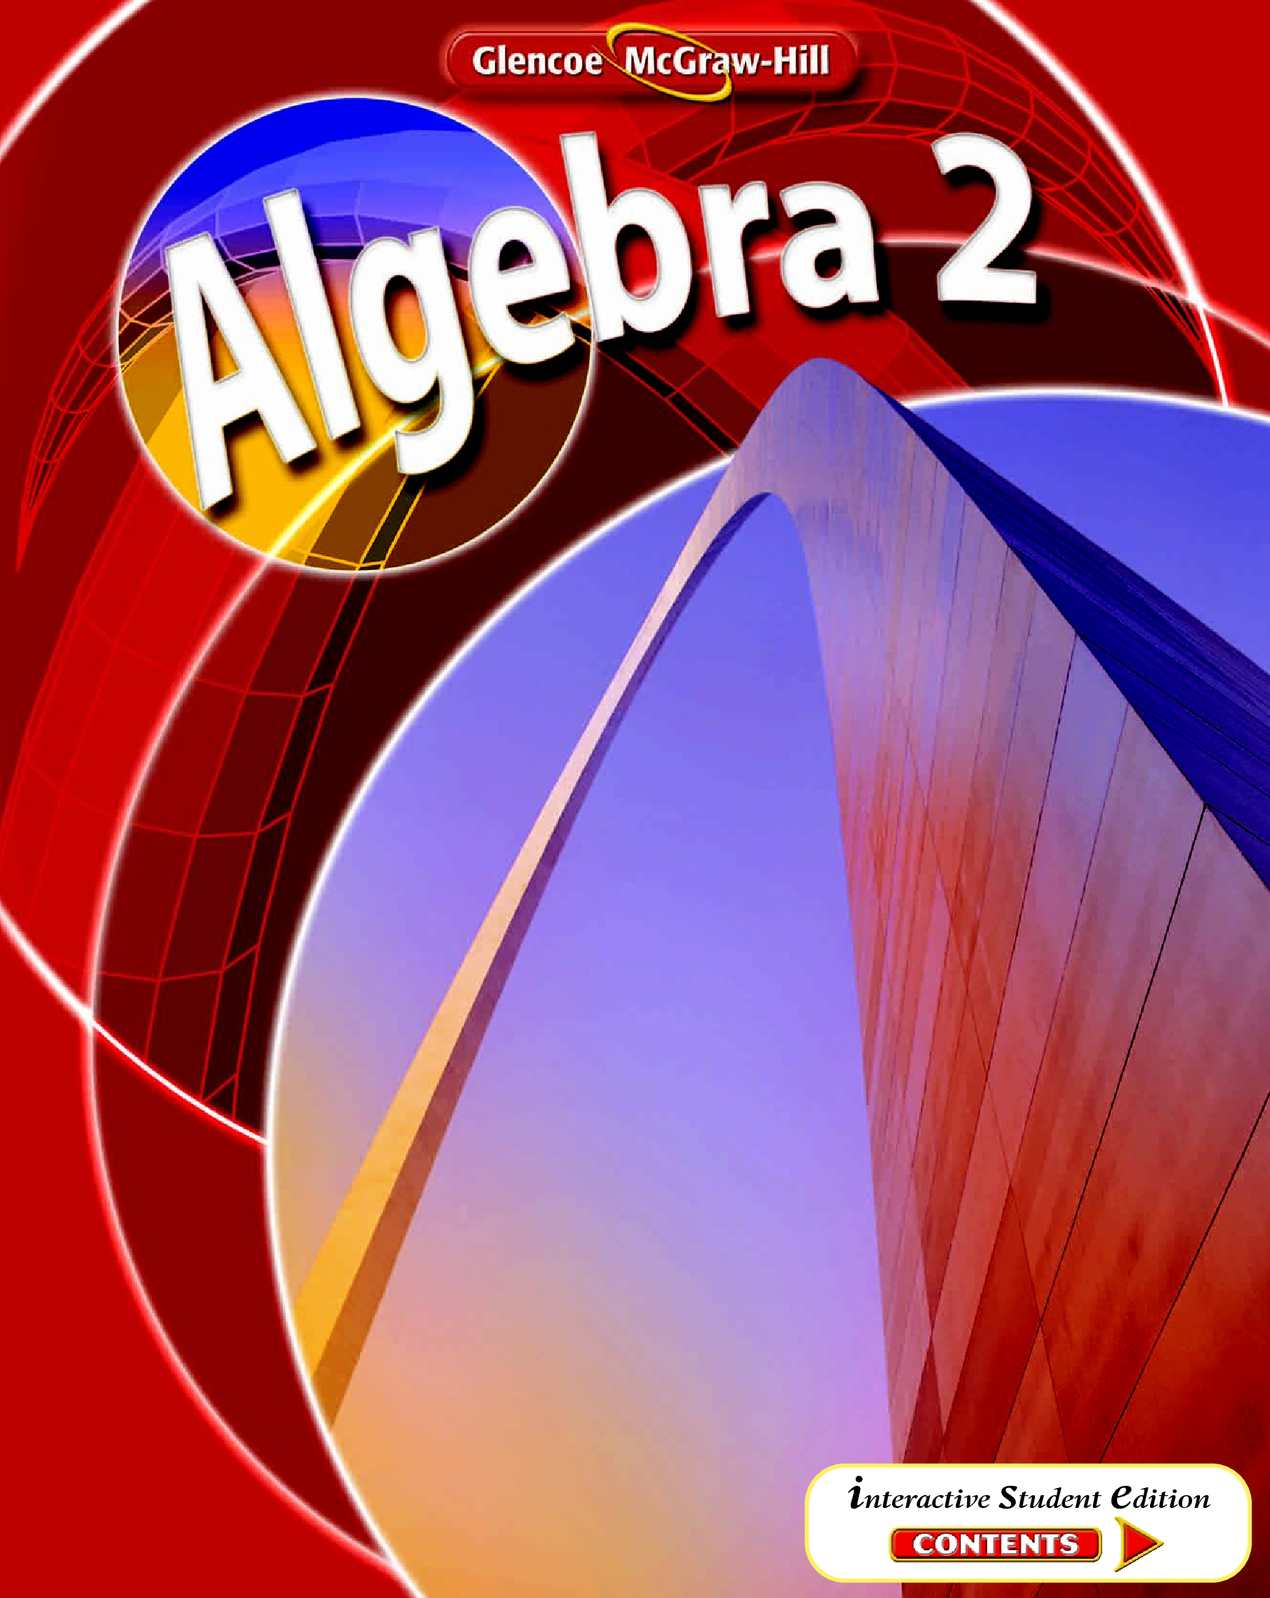 Calaméo - Algebra 2 McGraw-Hill